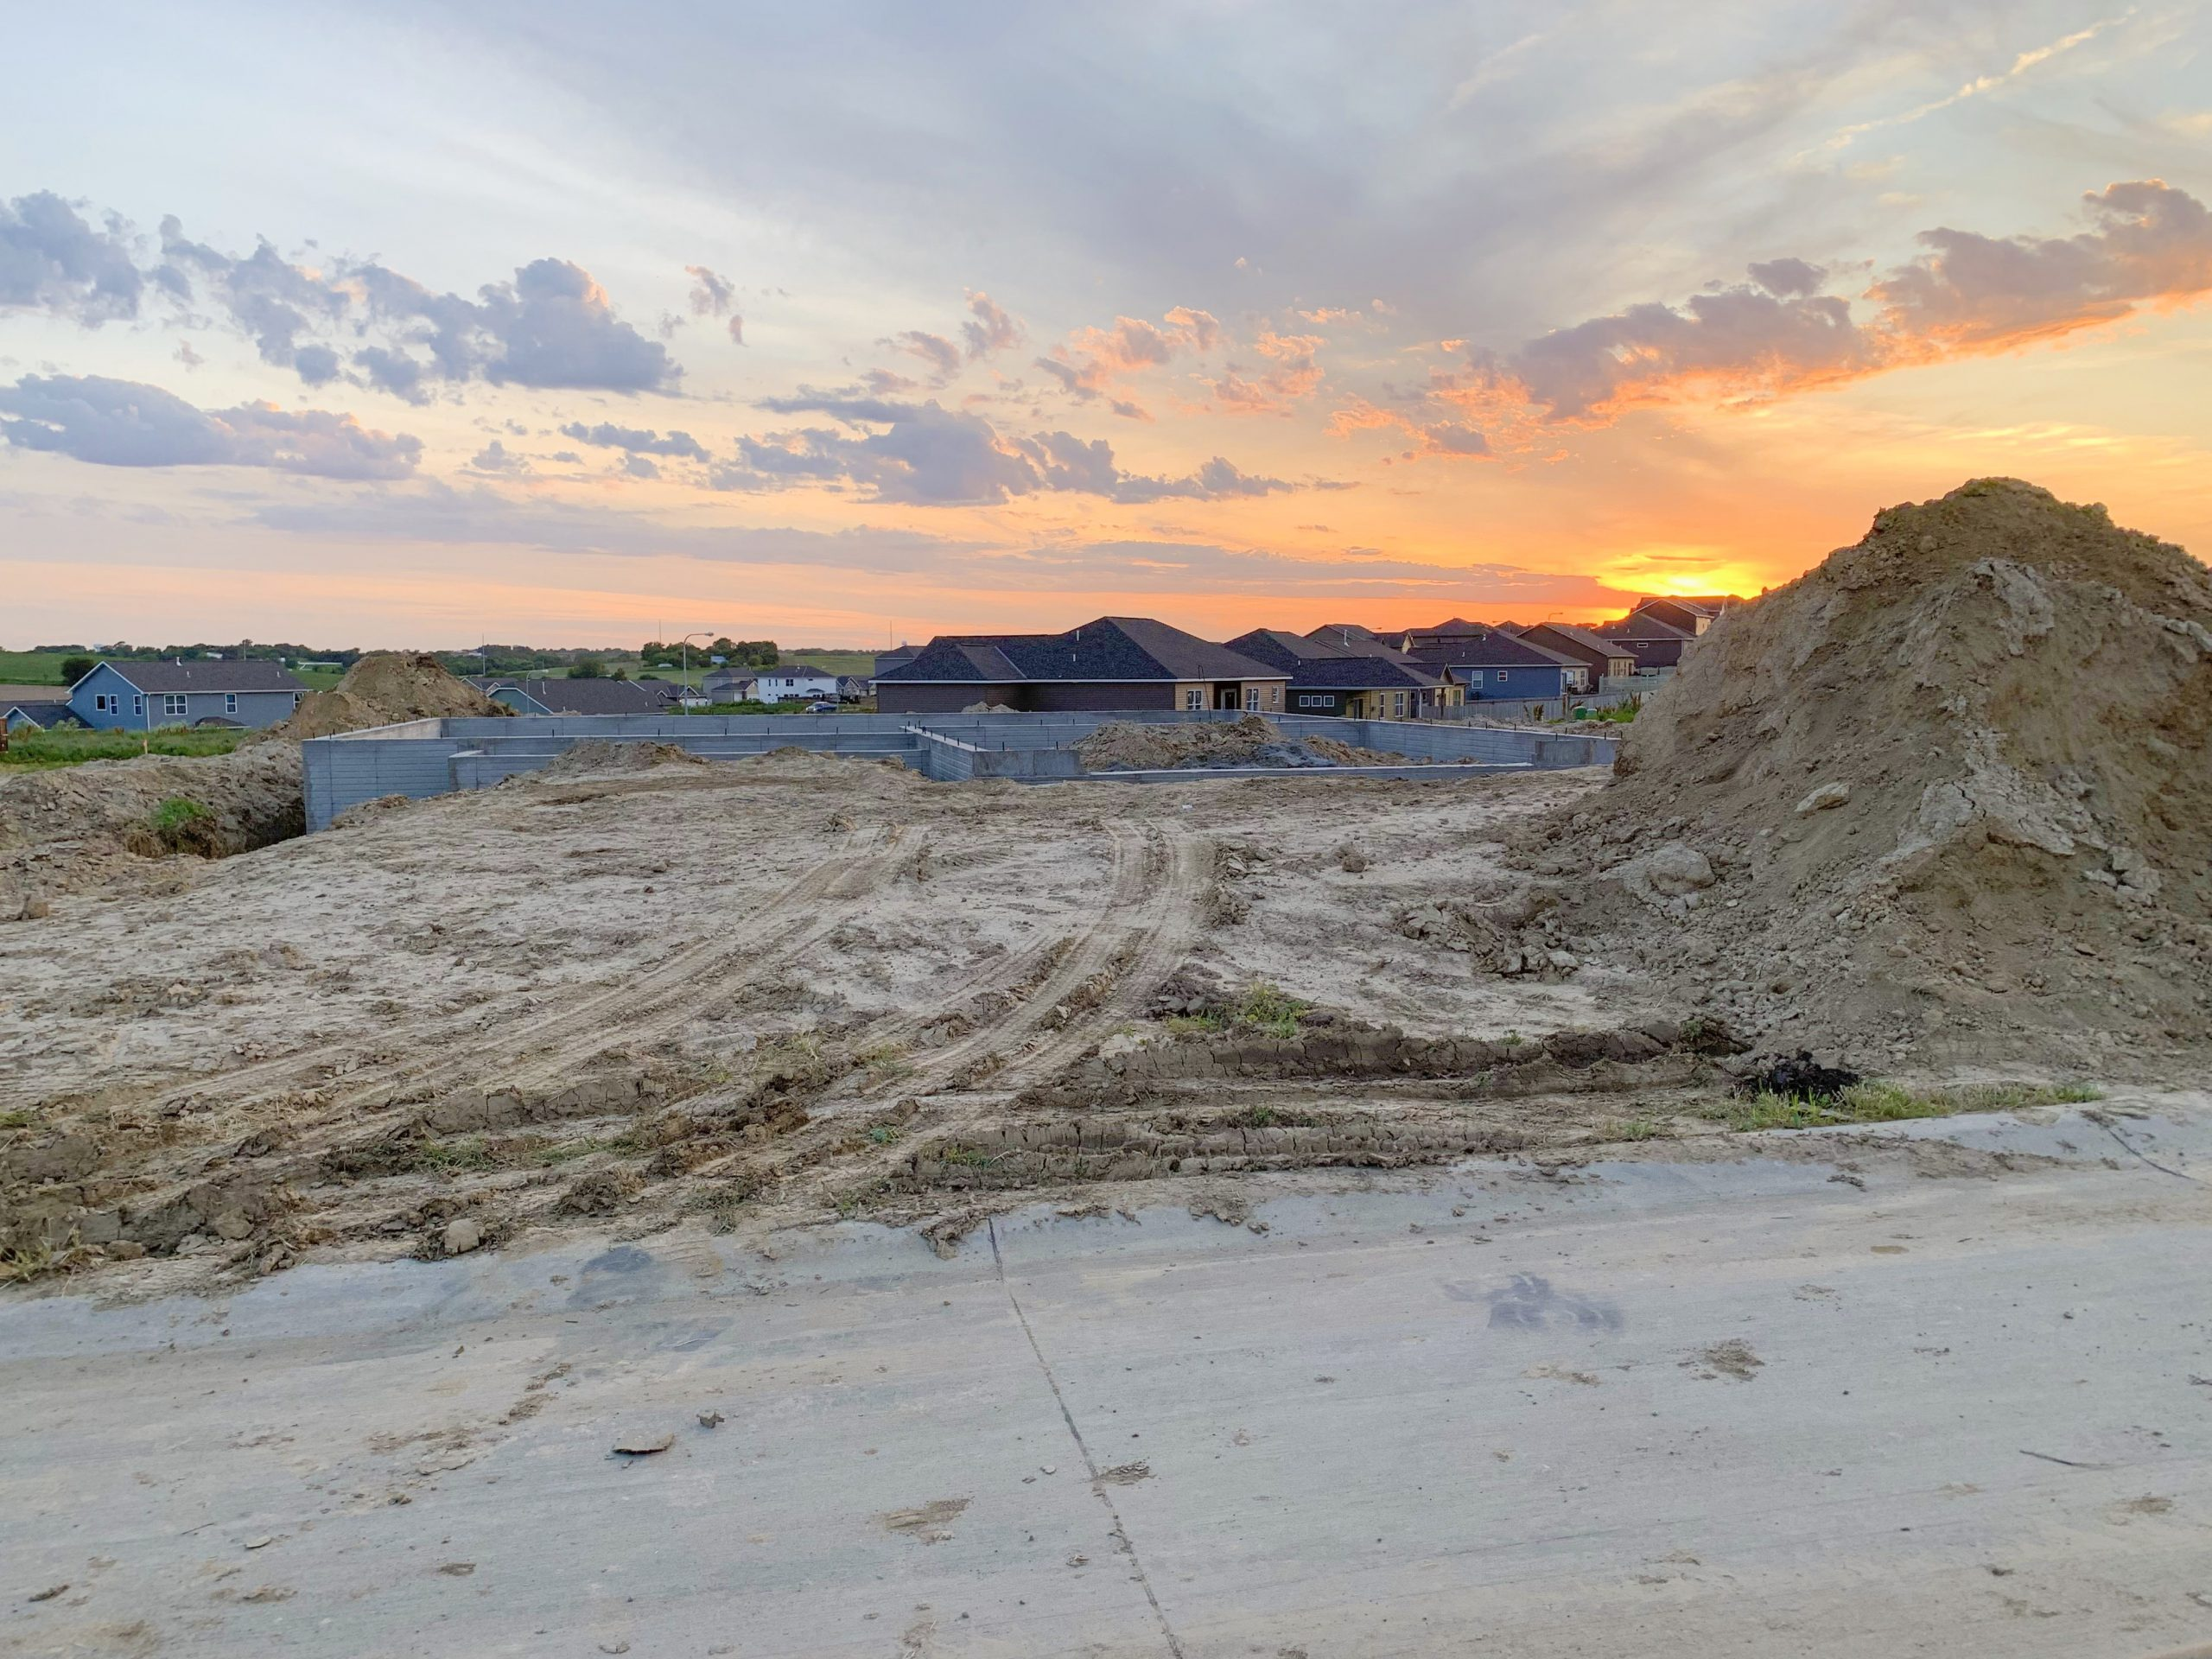 sunset photo of our new home build